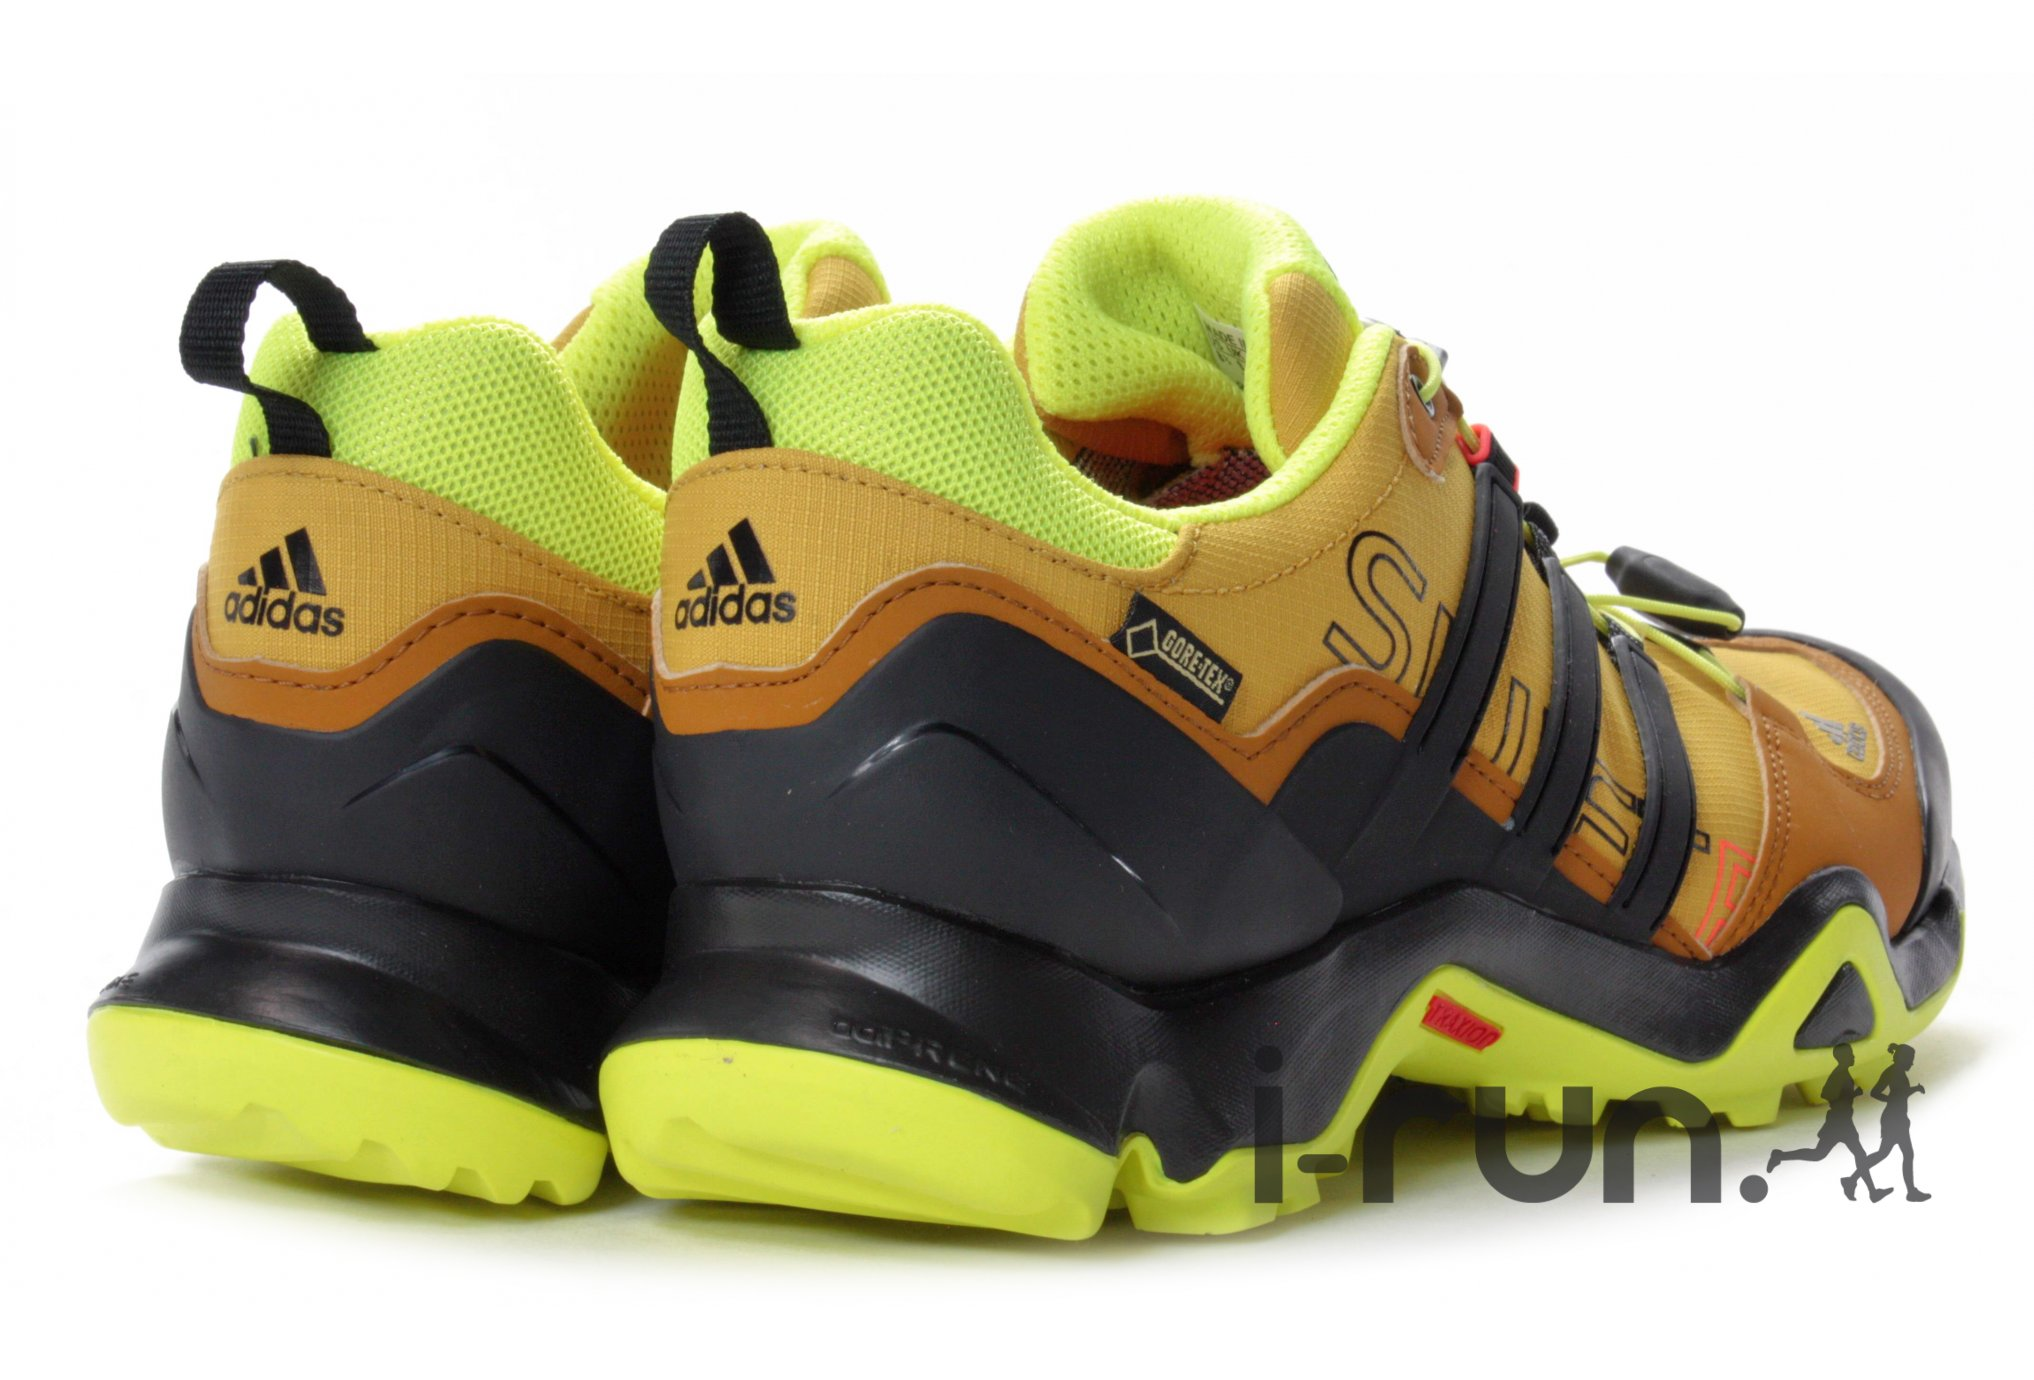 adidas terrex swift rm,adidas terrex swift r m chaussures homme homme chaussures 5f8165